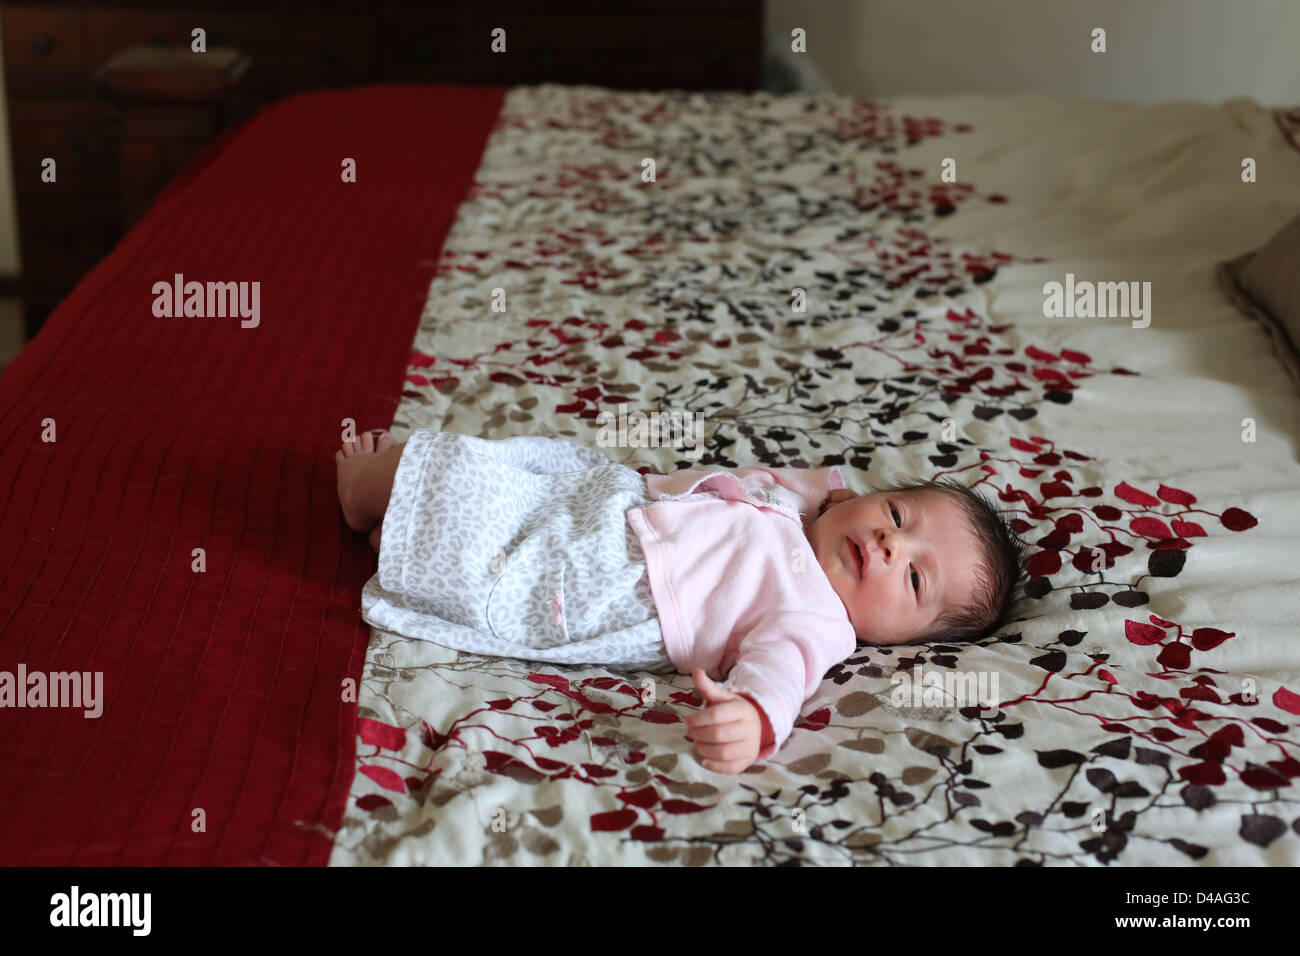 A tiny newborn baby lying on a large bed. Stock Foto